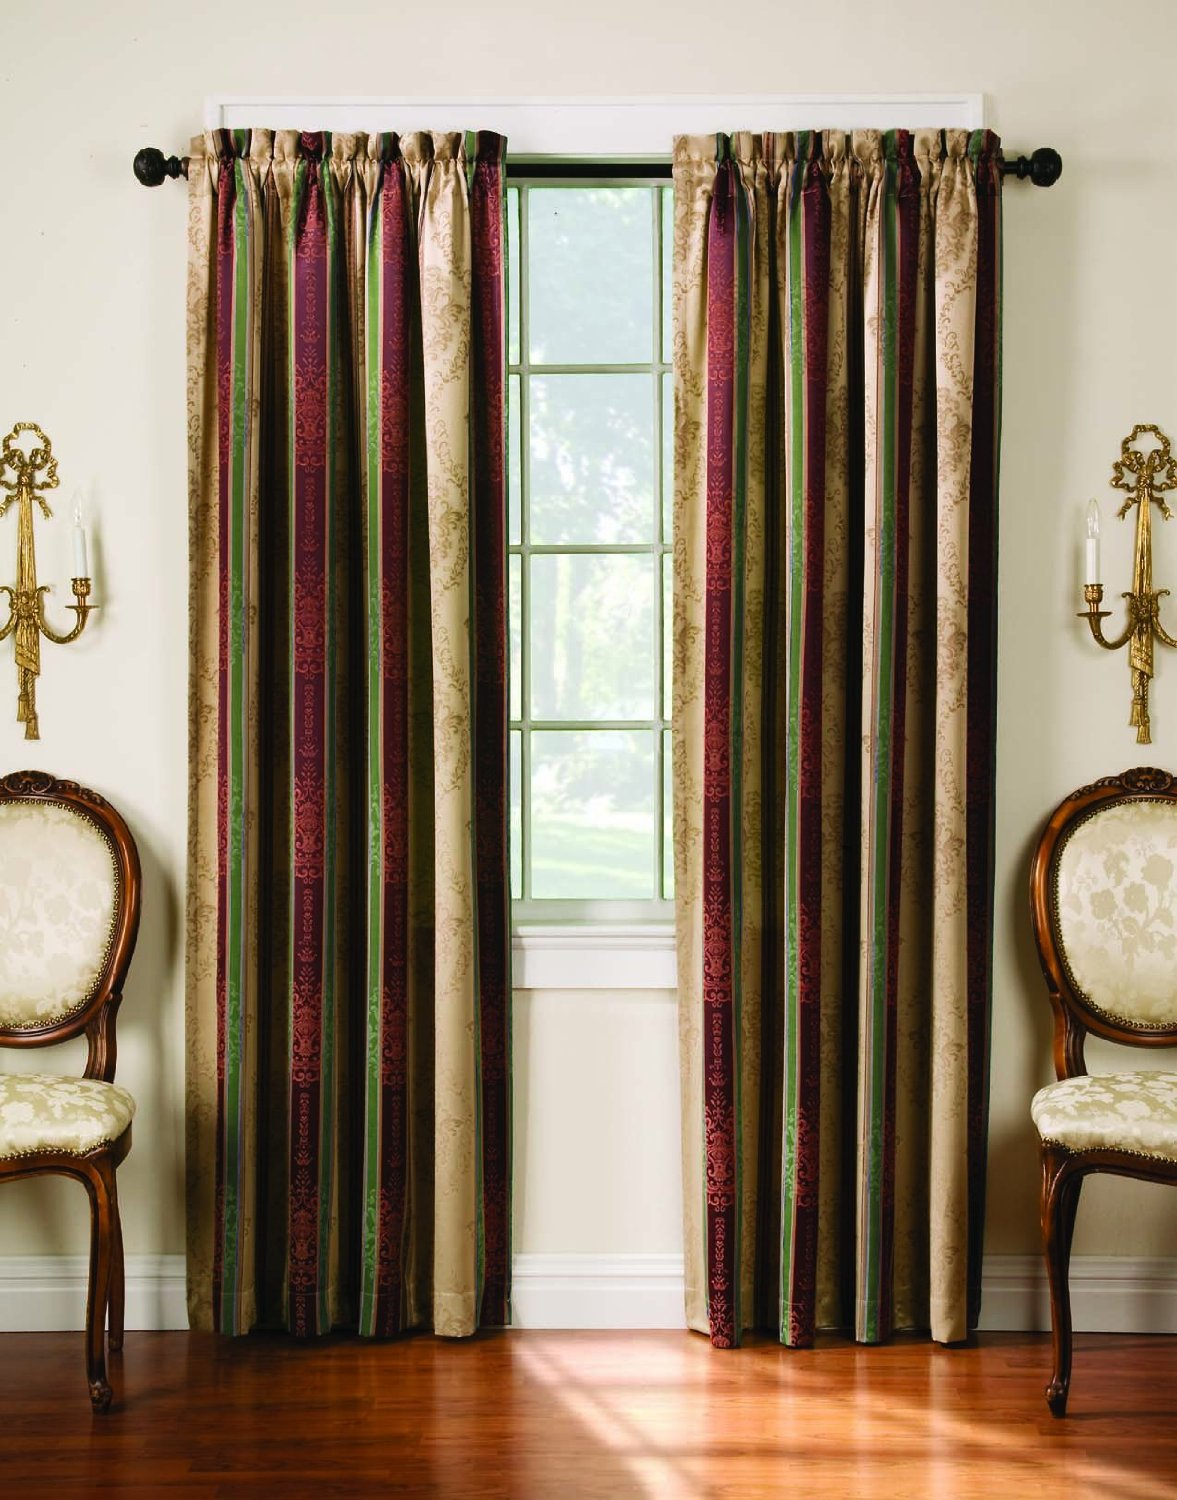 Sound Reducing Curtains In Tuscan Decorated Withfy Chairs And Candle  Holder On Wall And Wooden